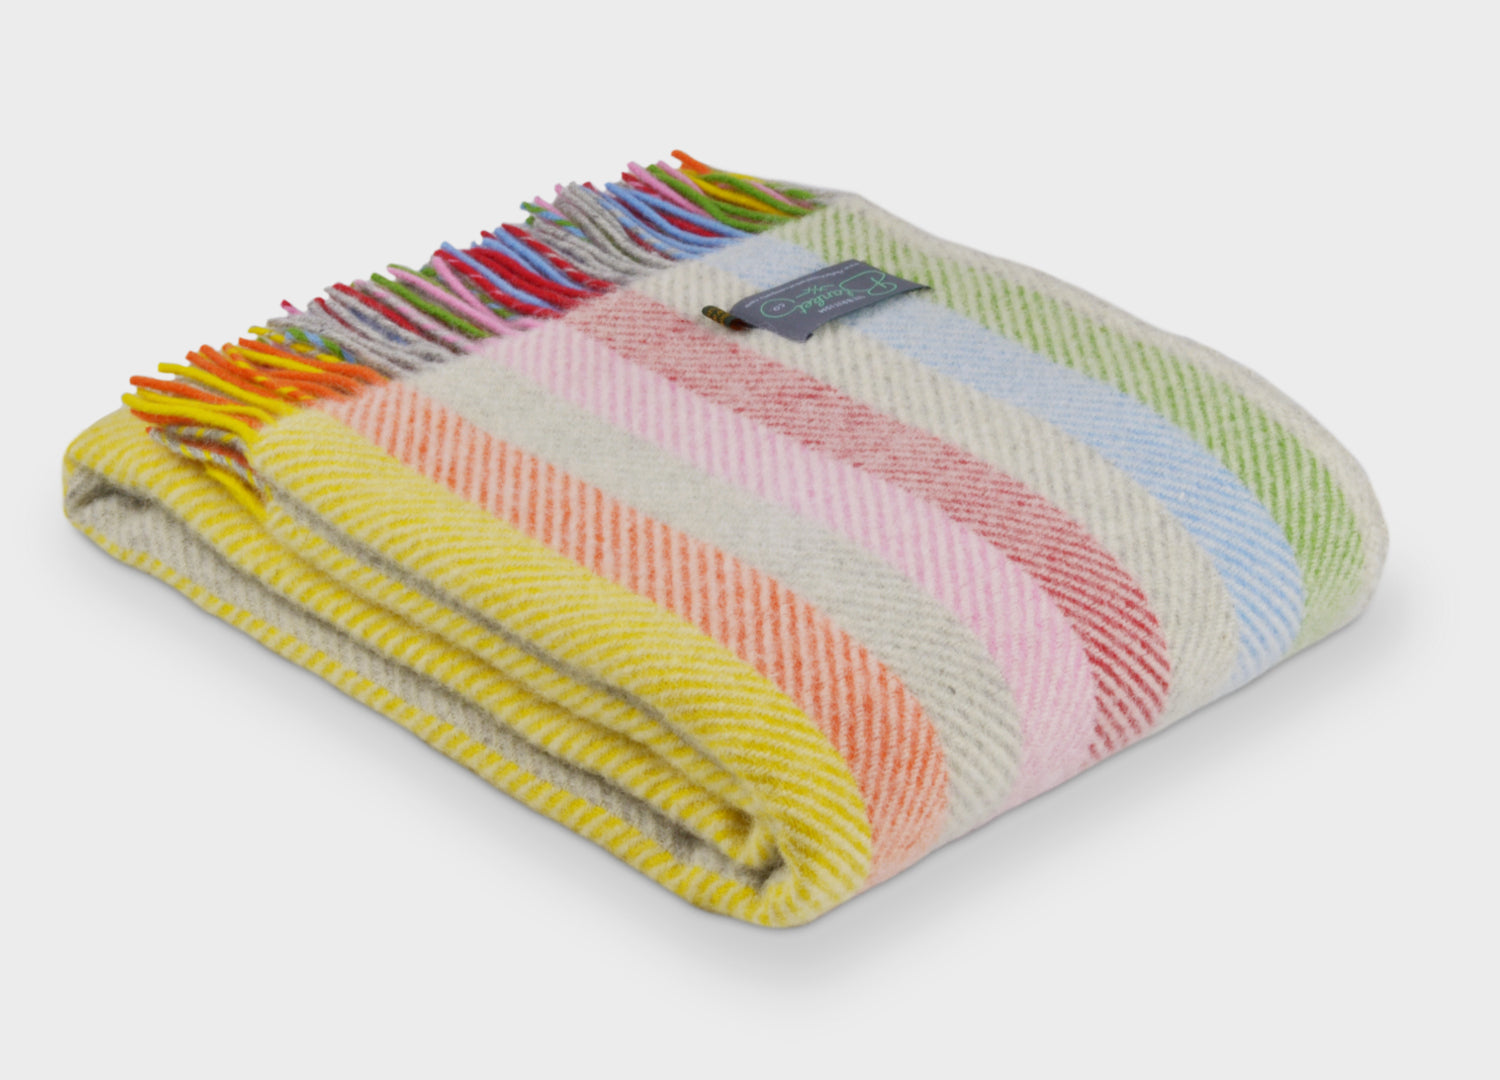 df7a881b1e Rainbow Stripe Herringbone Throw - buy at The British Blanket Company